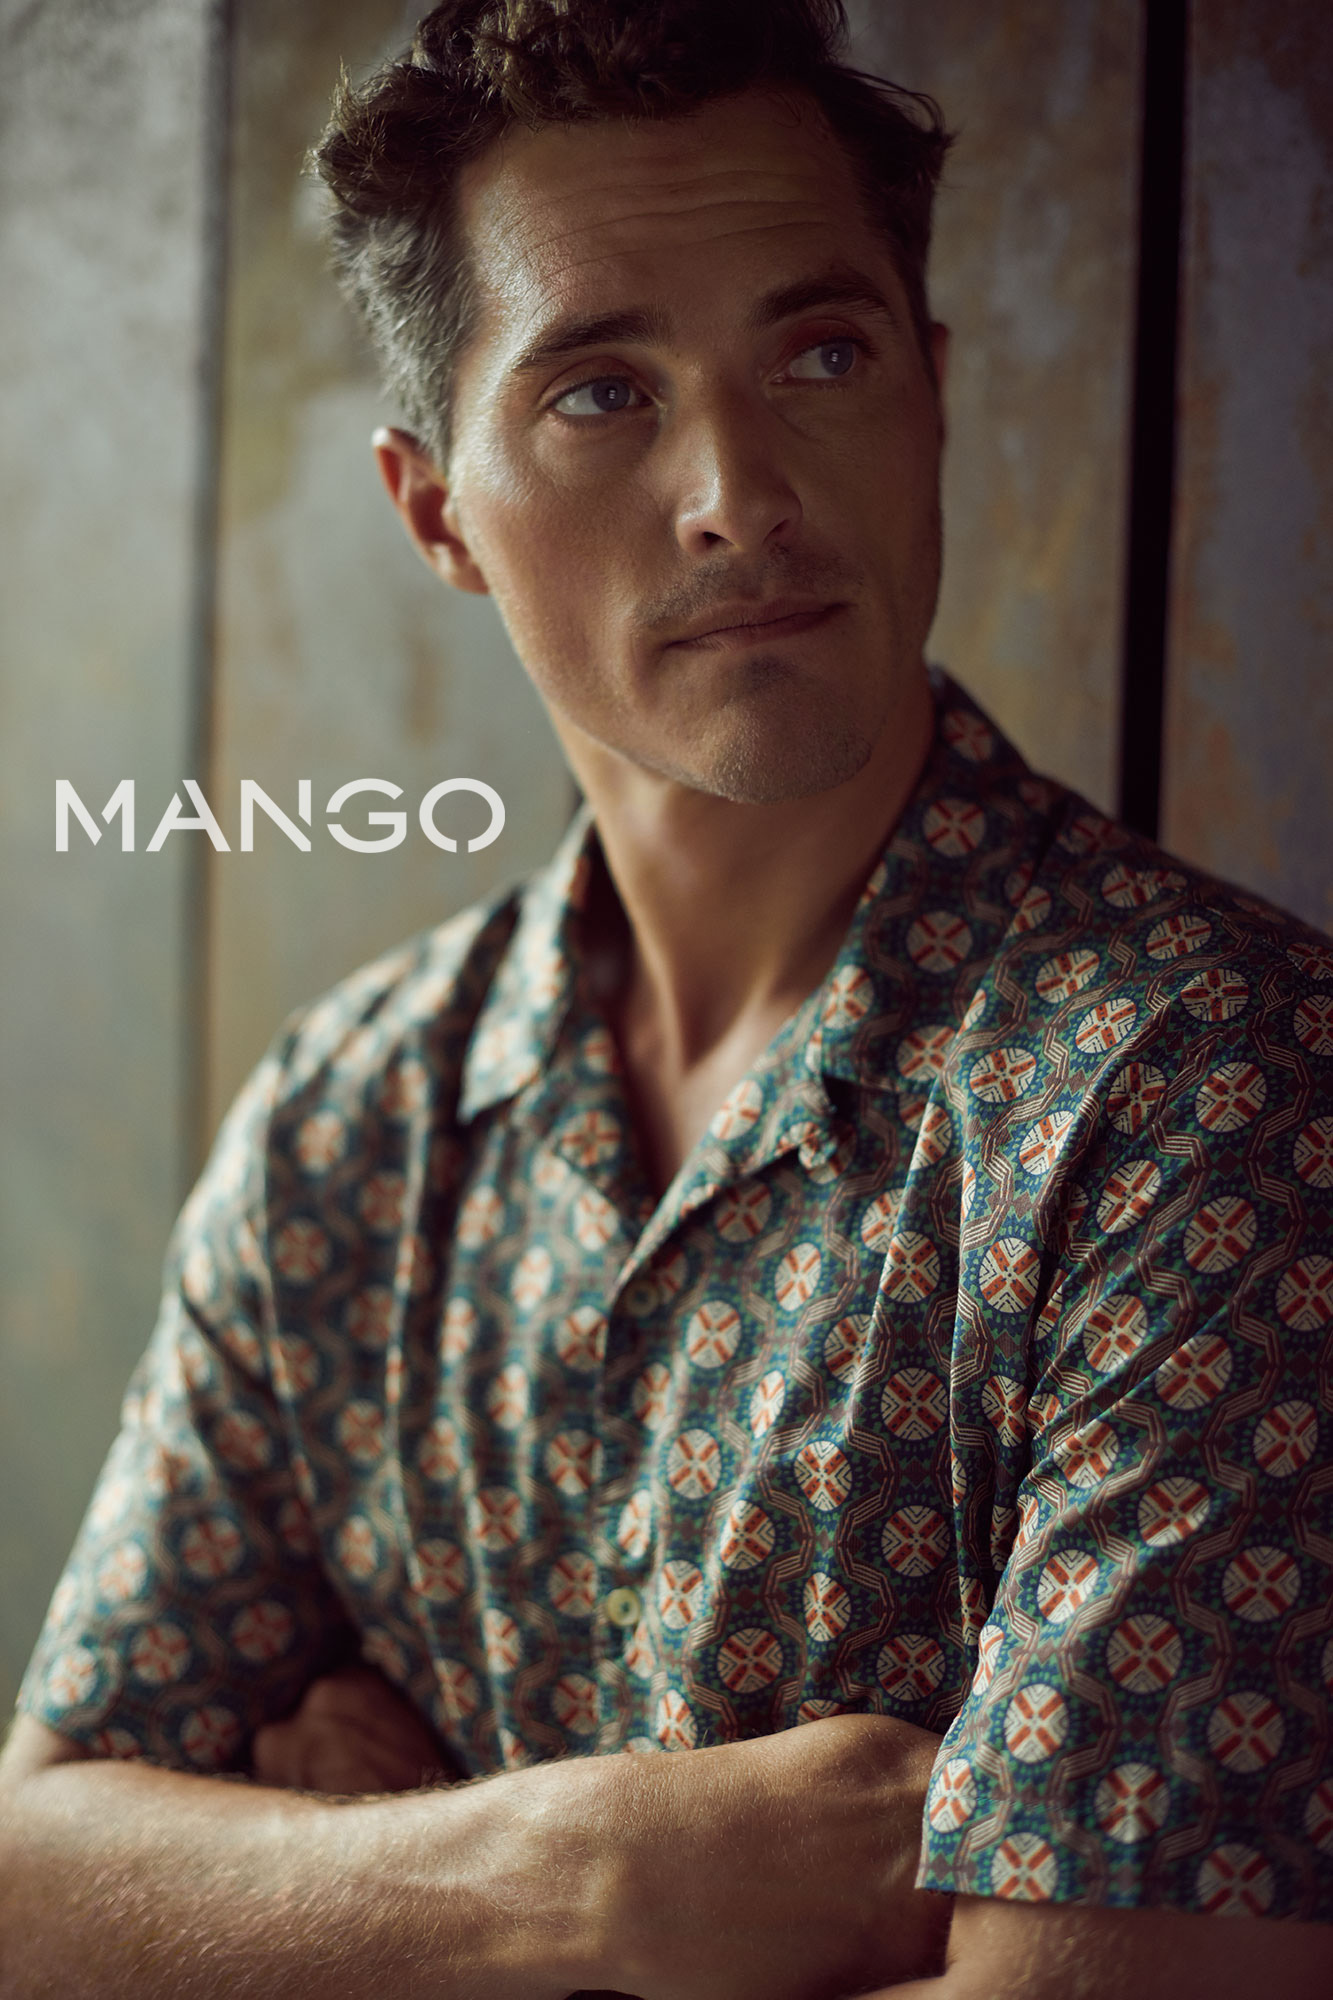 Mango Man 2018 | Mango | Numerique Retouch Photo Retouching Studio